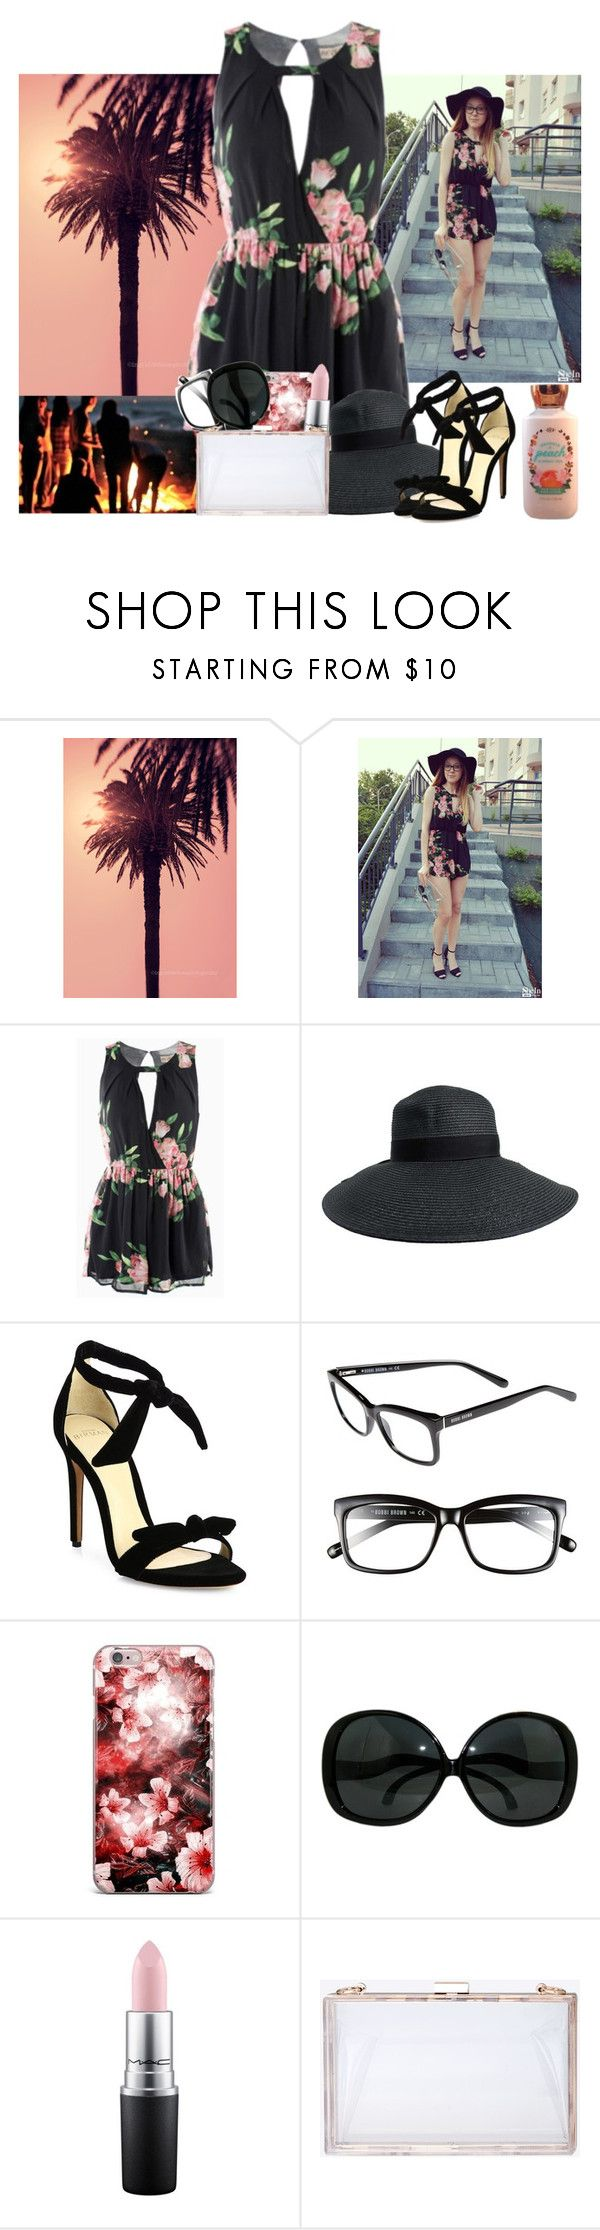 """Bonfire Party"" by diane-corporan ❤ liked on Polyvore featuring WALL, Alexandre Birman, Bobbi Brown Cosmetics and MAC Cosmetics"